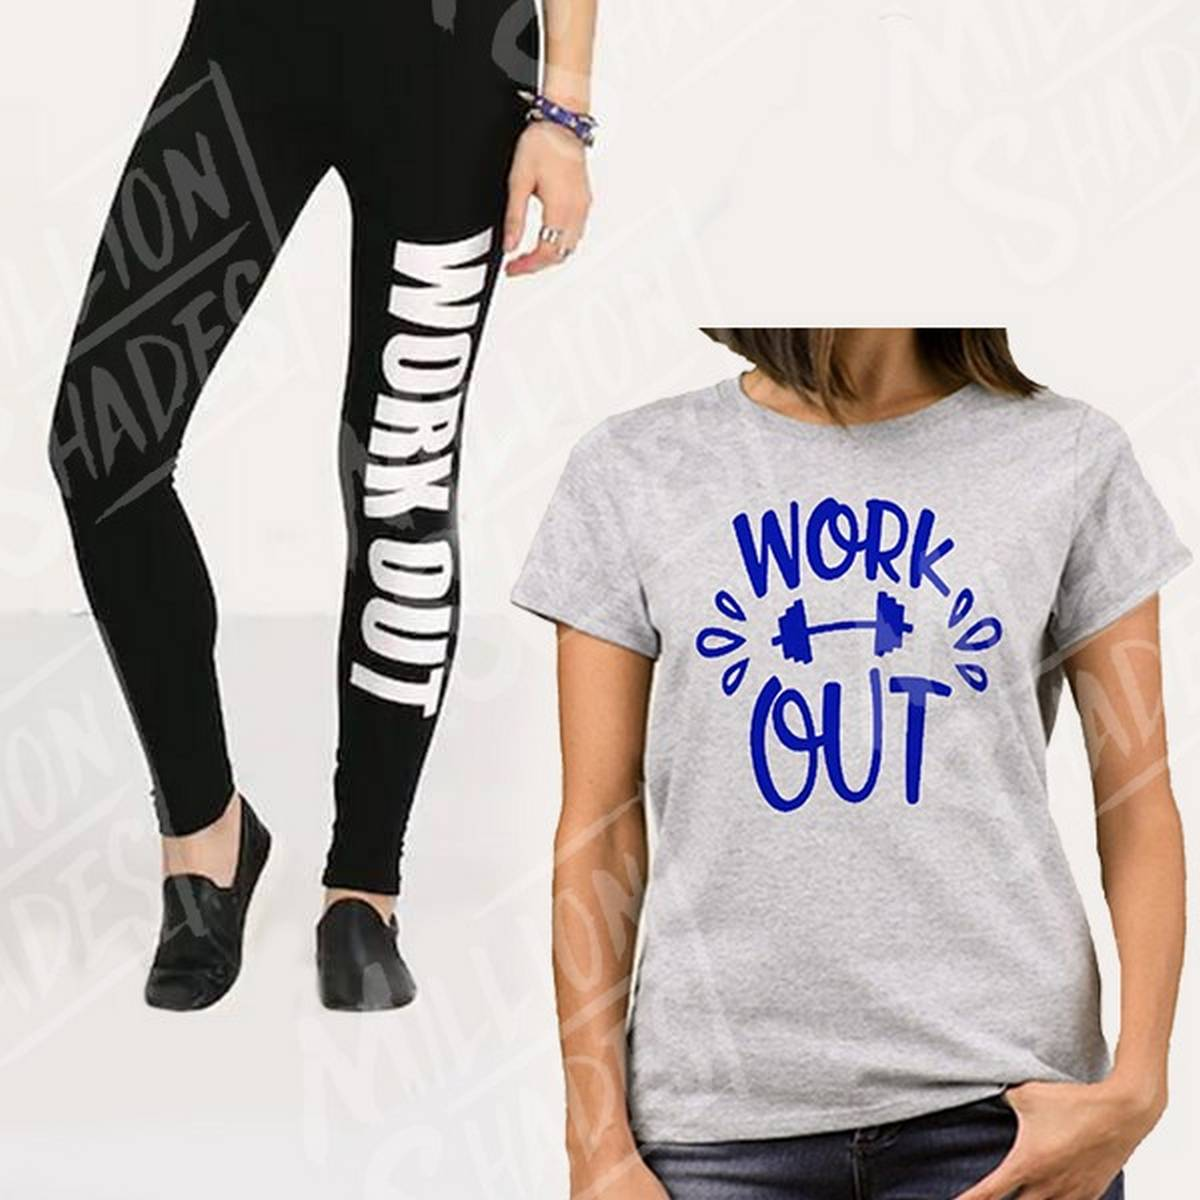 Grey & Black Work out Printed Gym Suit For Girls Women